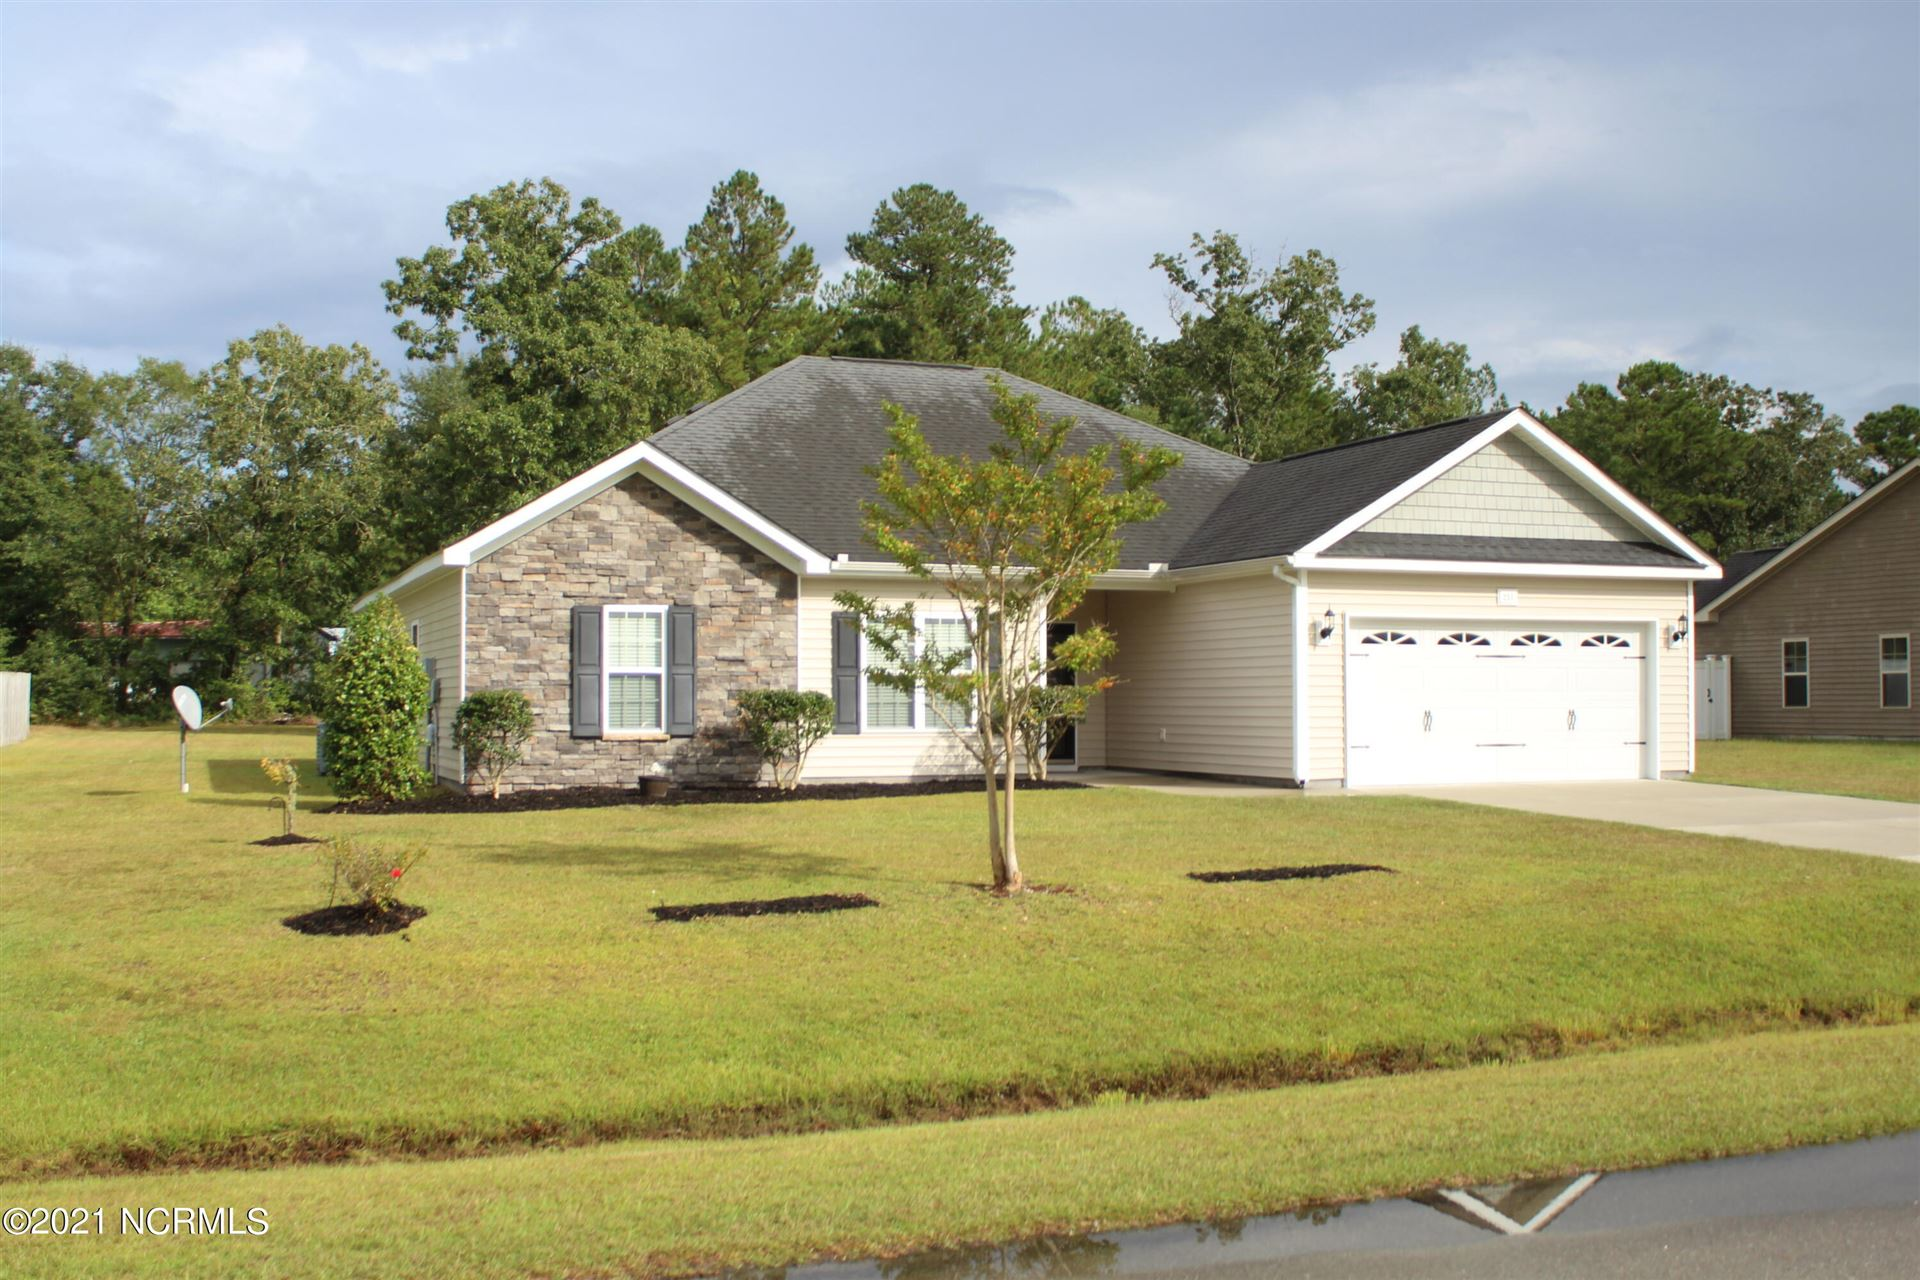 Photo of 251 Breighmere Drive, New Bern, NC 28560 (MLS # 100291288)